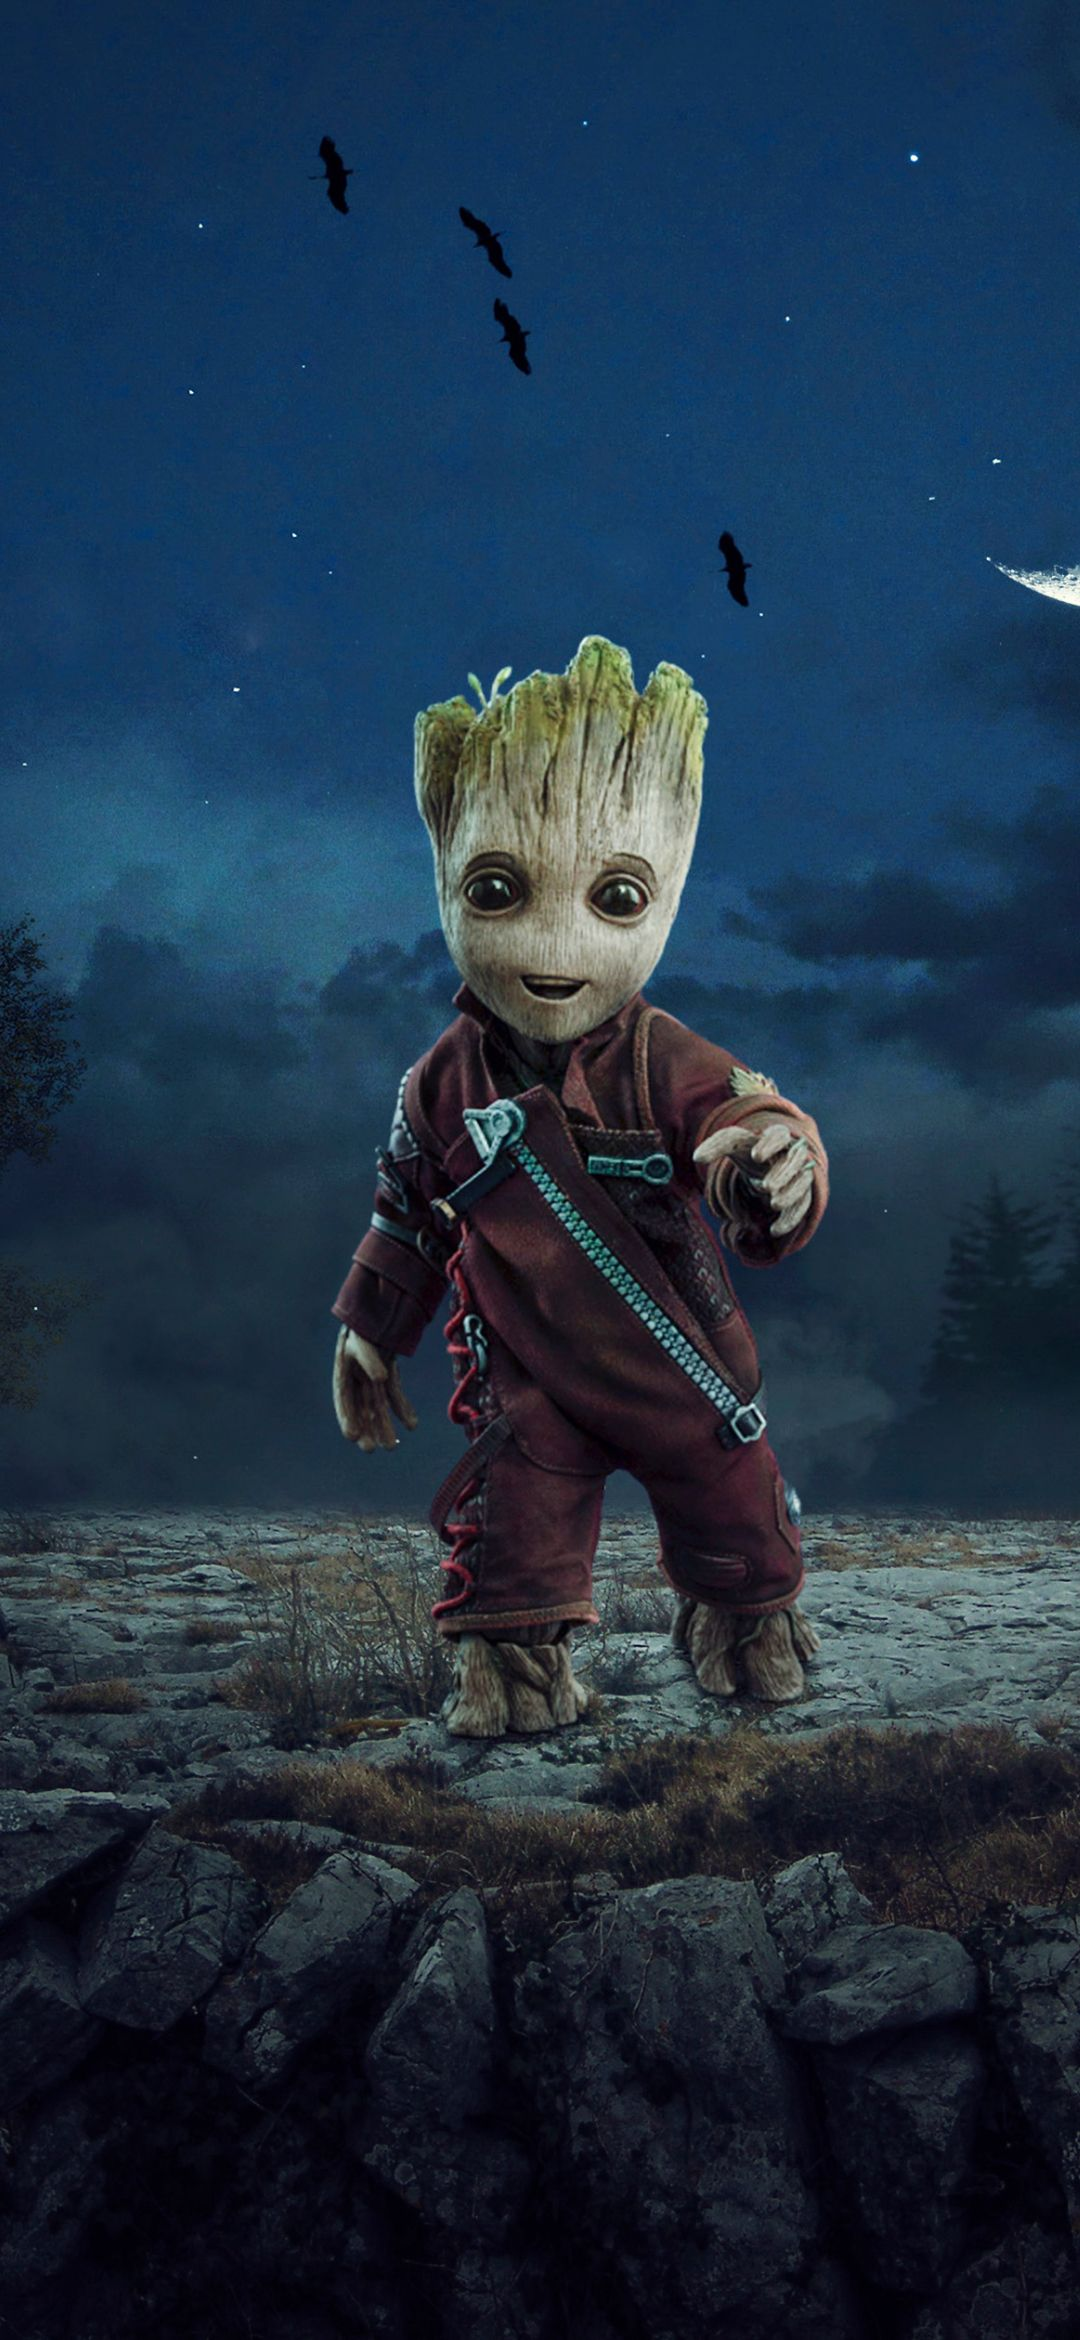 Baby Groot Wallpaper Hd Android 3d Wallpapers Marvel Wallpaper Hd Baby Groot Marvel Wallpaper